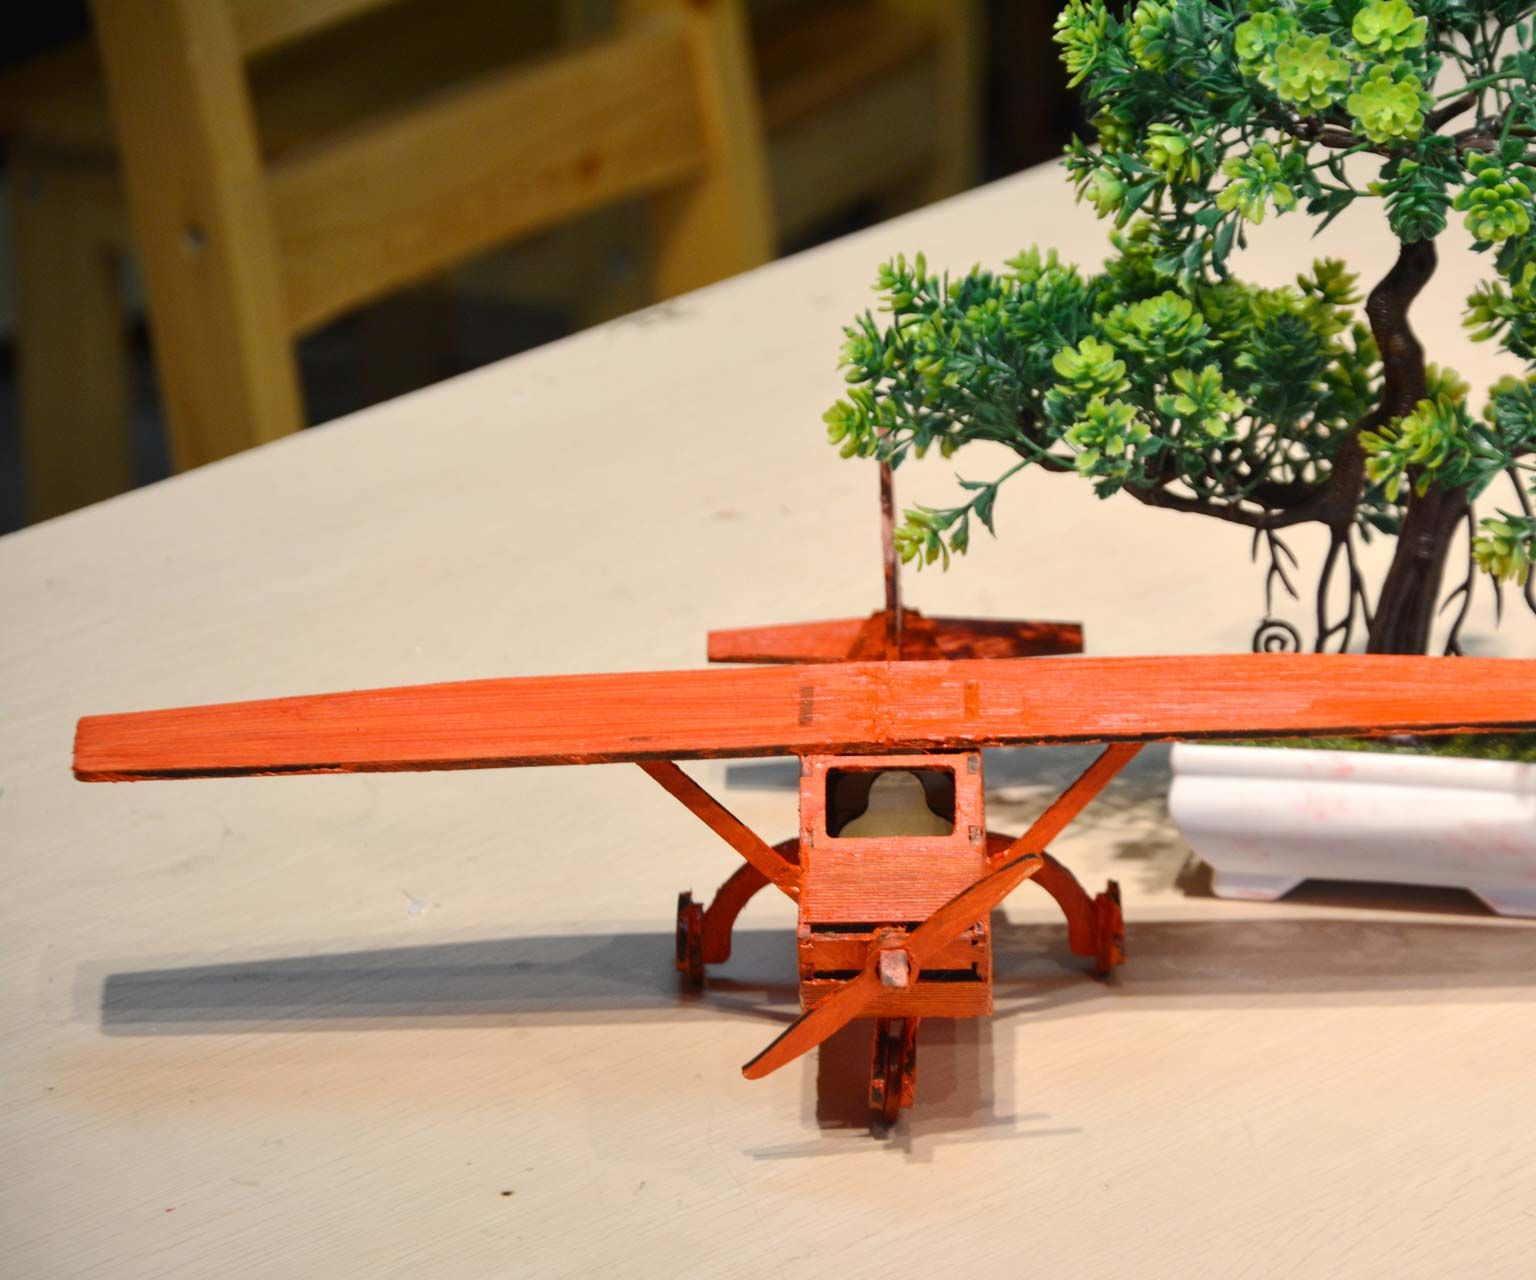 How to Make a Wooden Aircraft